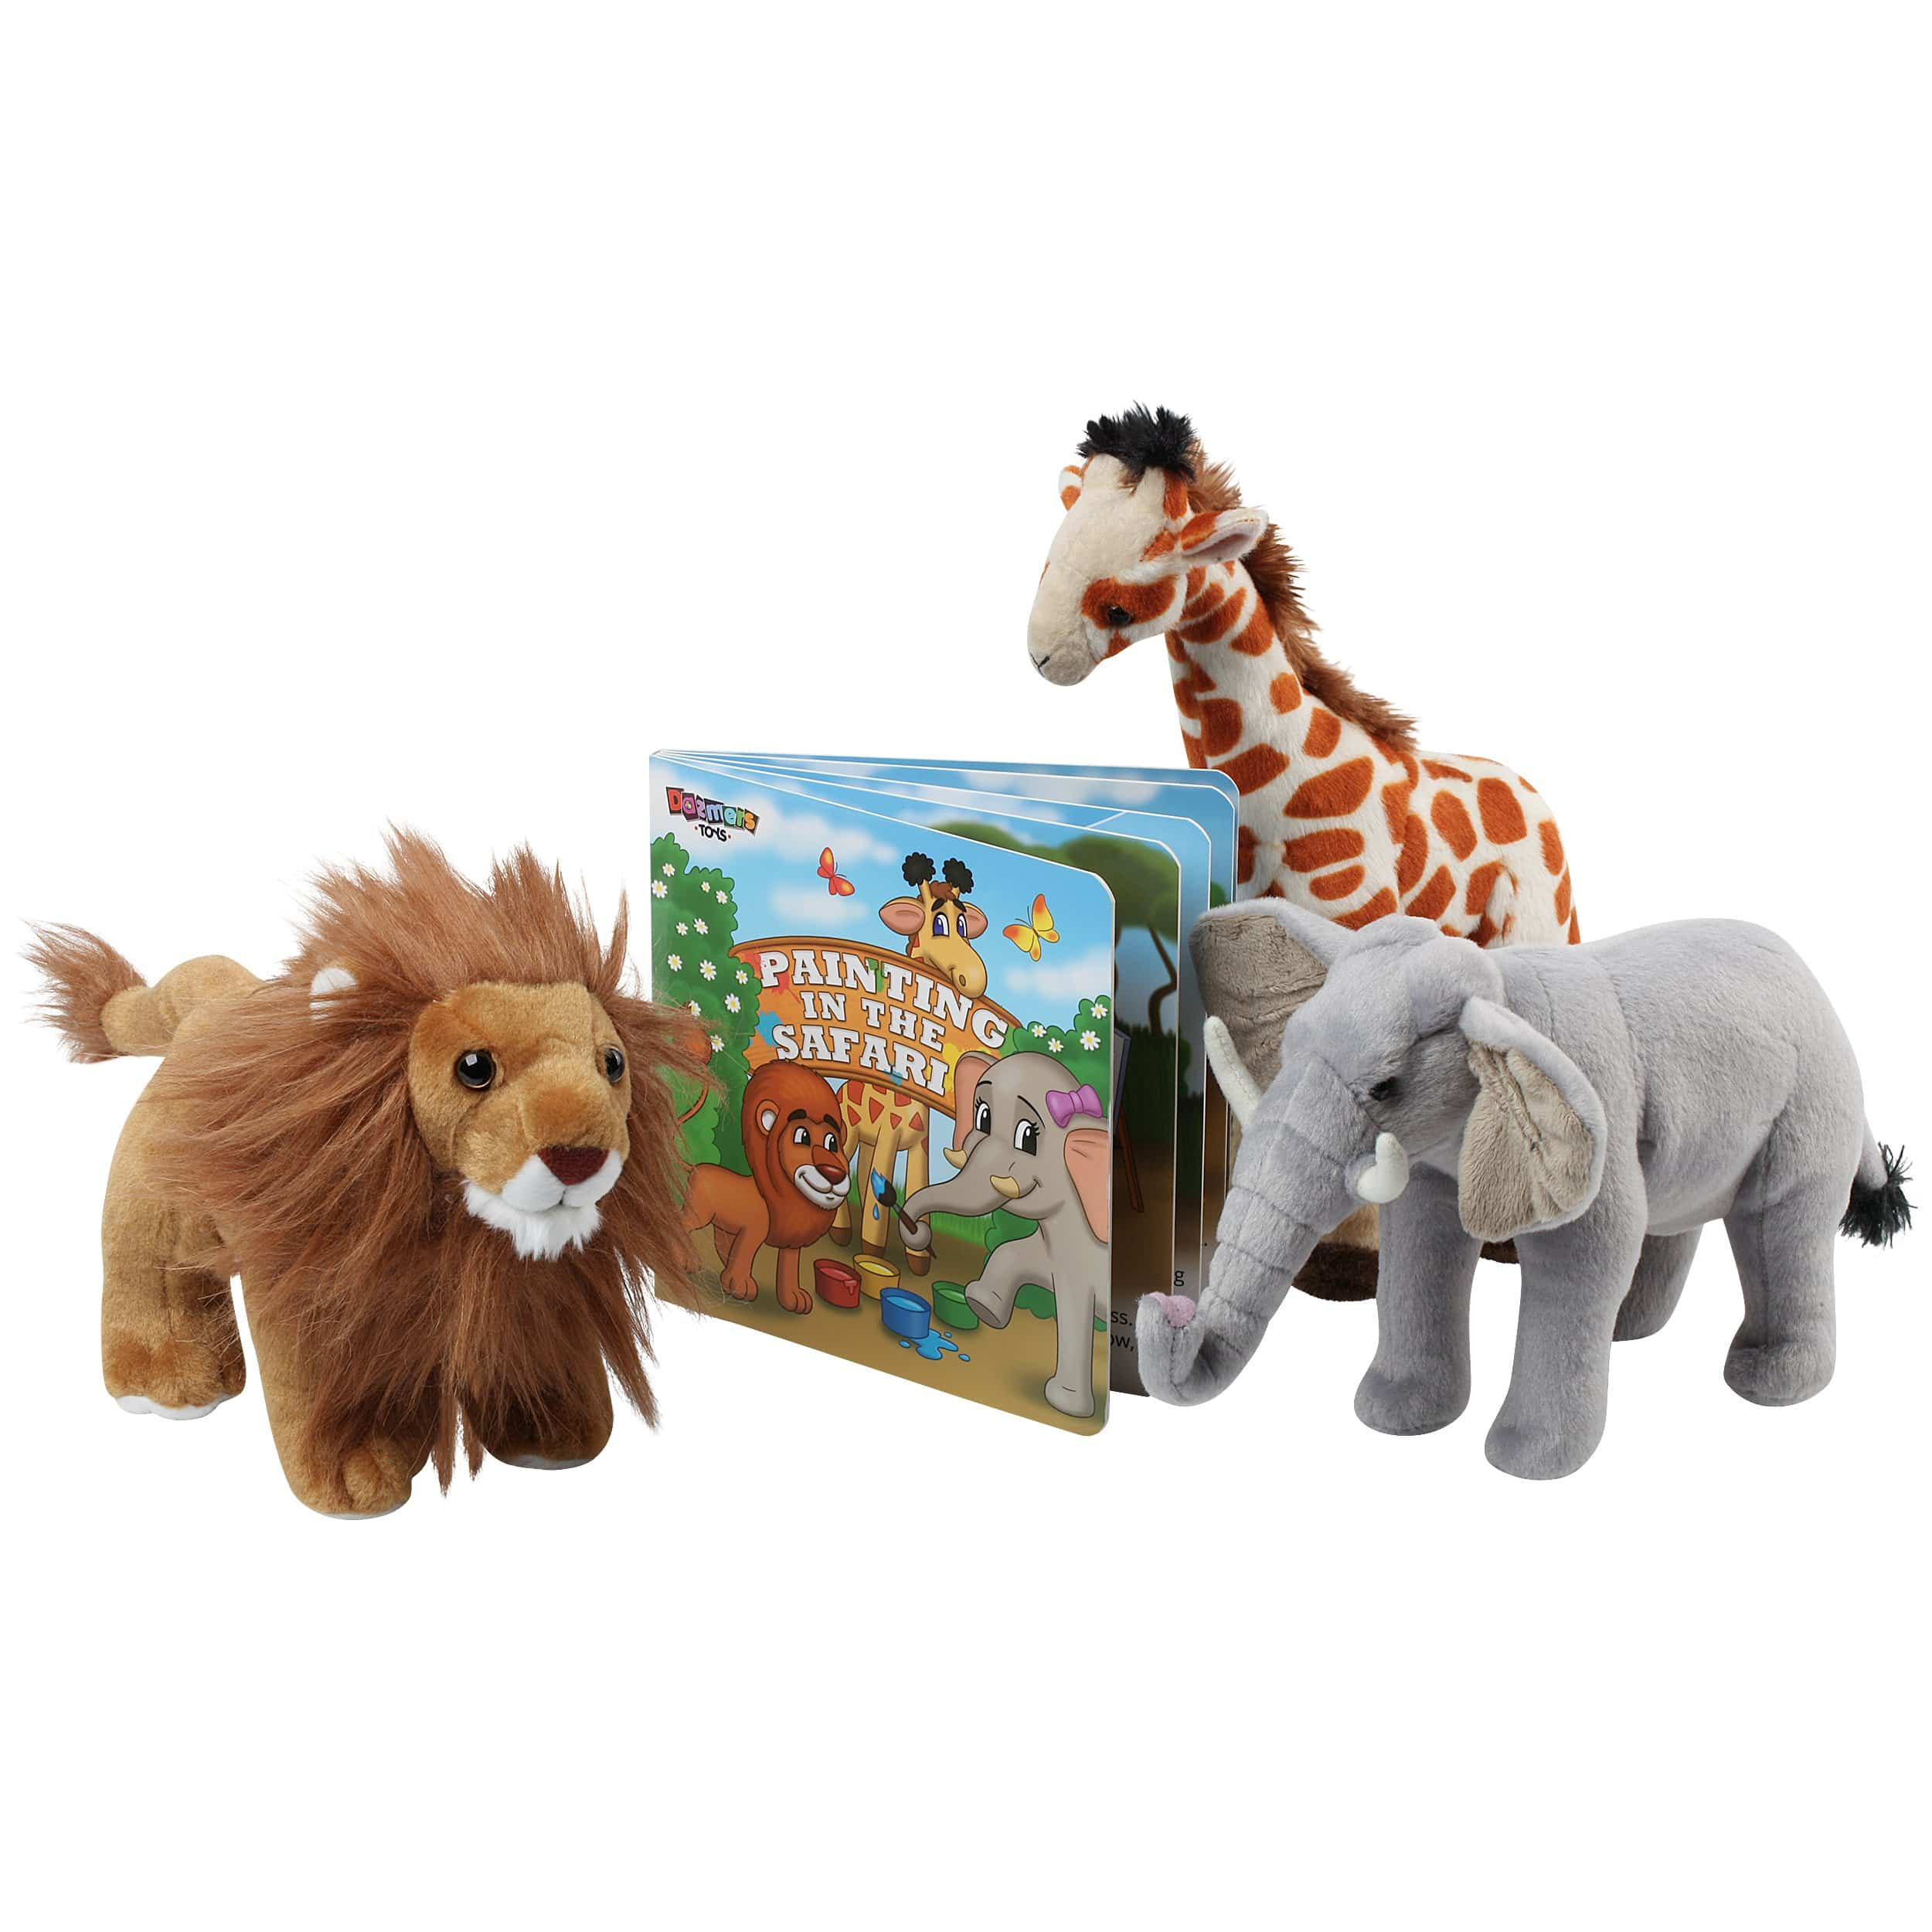 Stuffed Animals of 3 Savanna Animals with Storybook - 12""